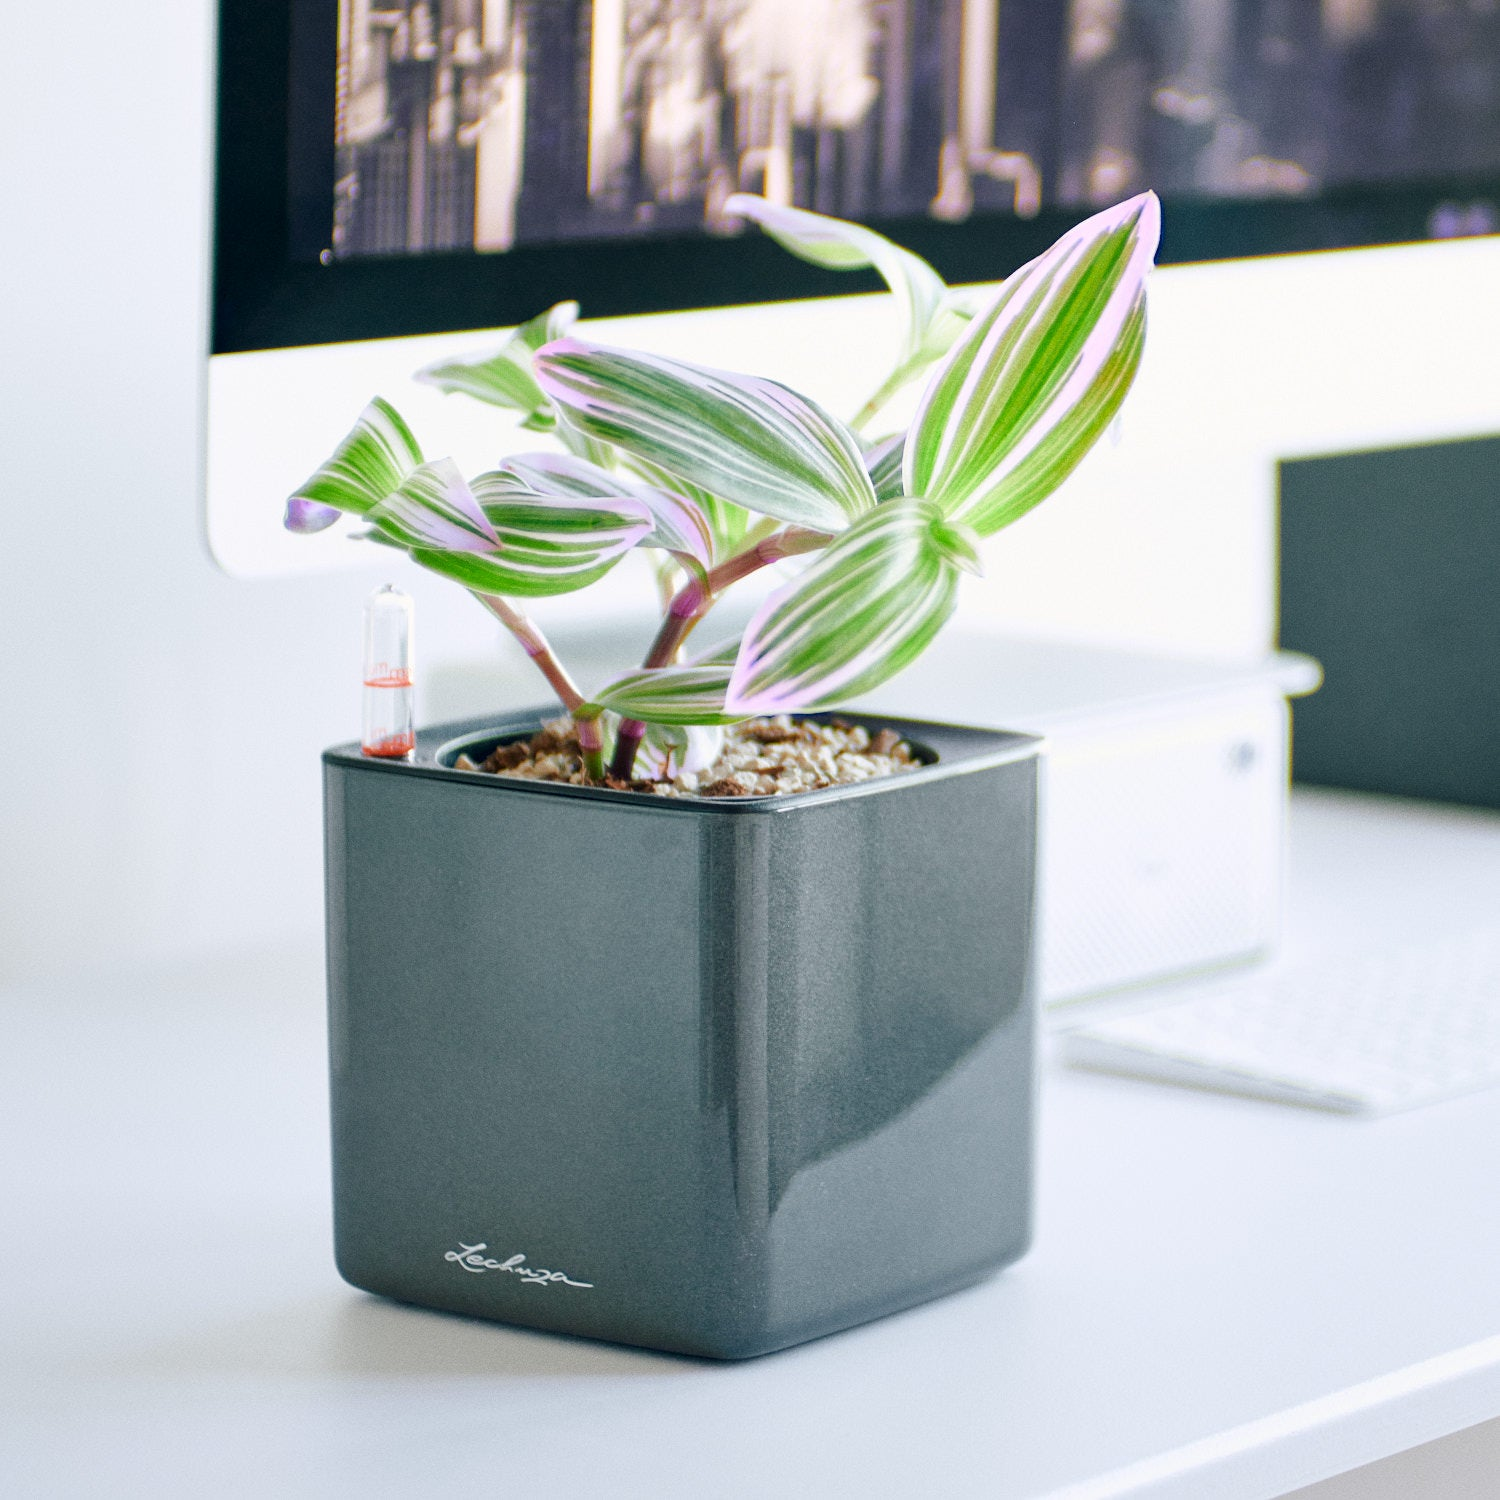 Nanouk In Lechuza Cube Glossy Charcoal Planter | My City Plants